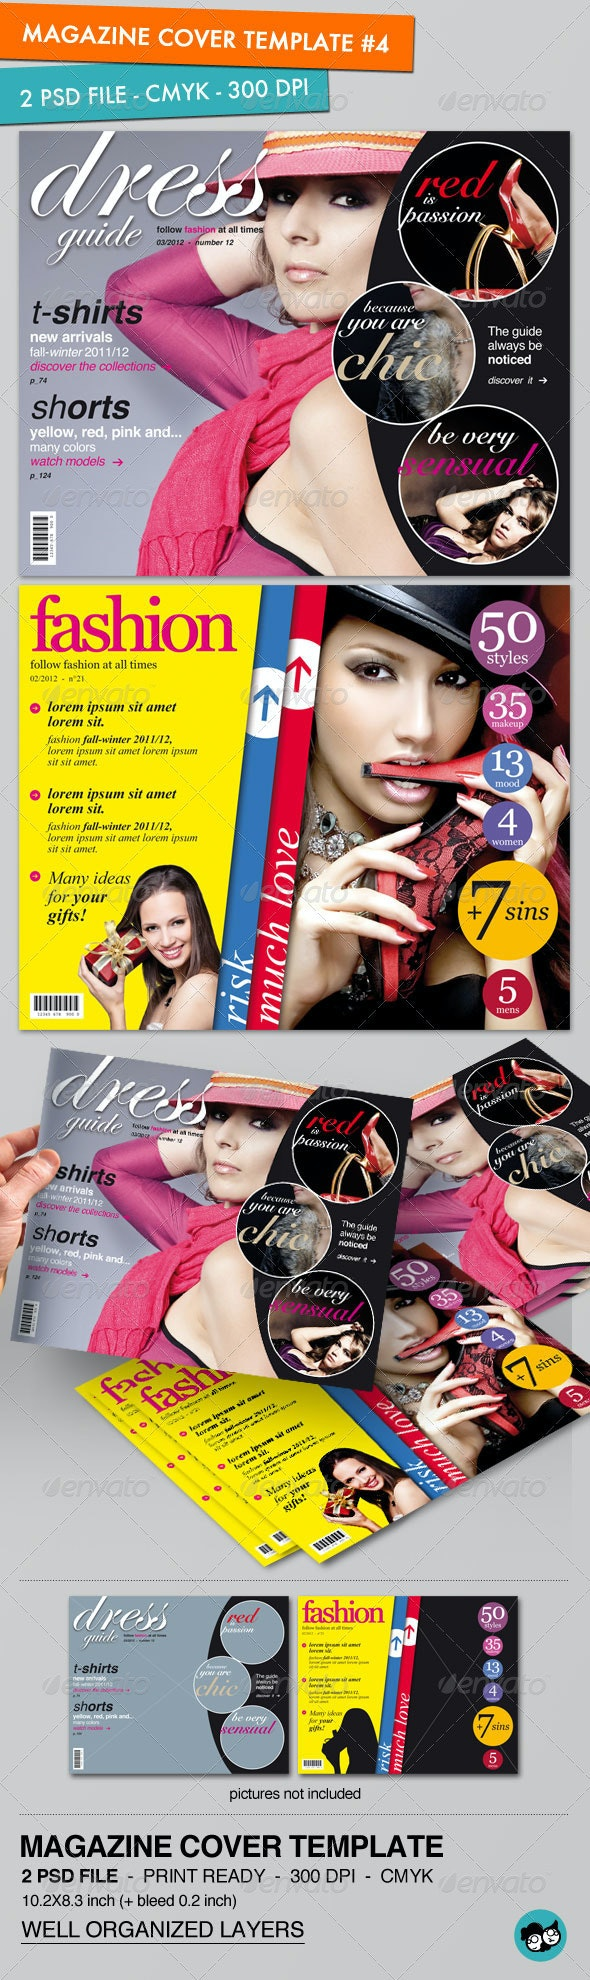 Magazine Cover Template (pack #4) - Magazines Print Templates